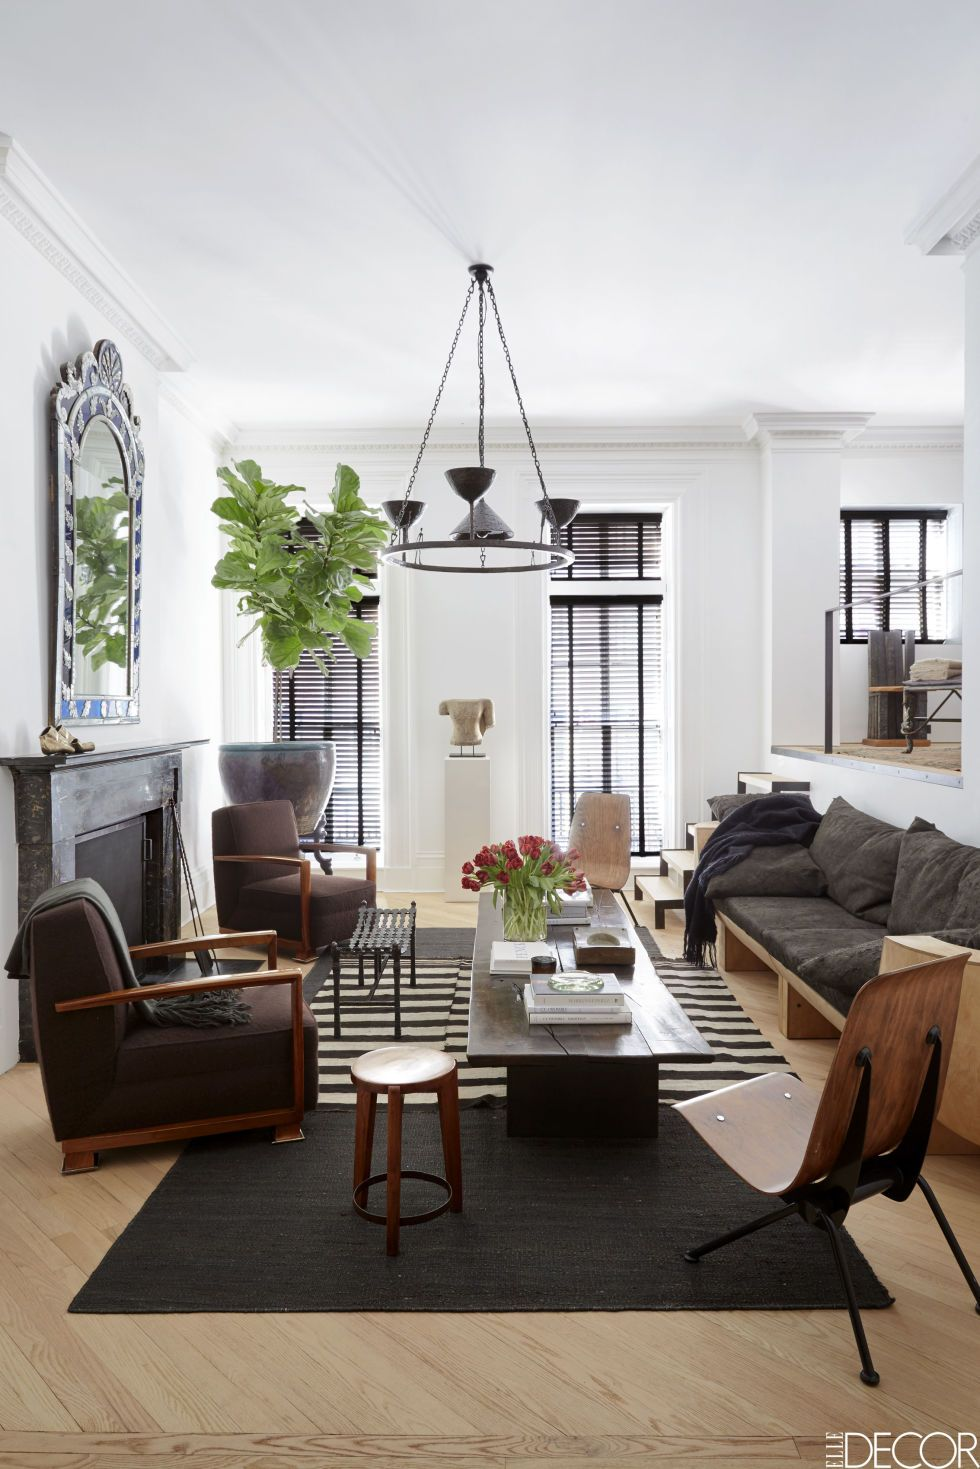 HOUSE TOUR: A New York City Apartment With Laid-Back LA Vibes | West ...